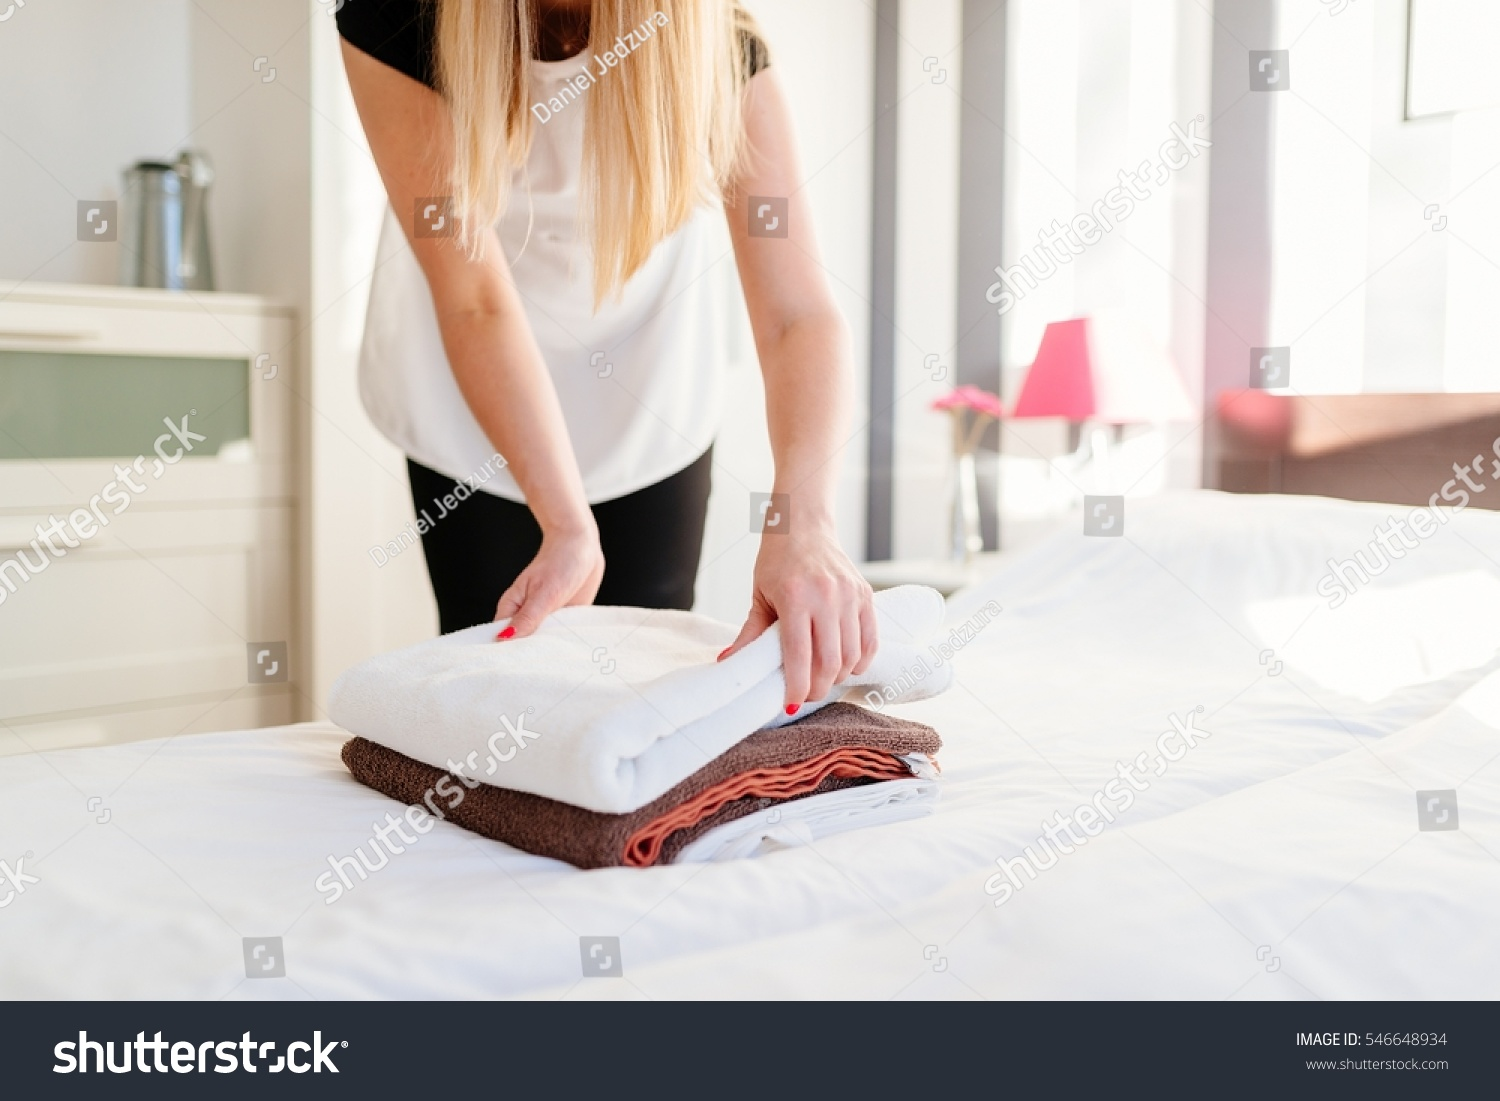 Young Hotel Maid Placing Fresh Towels Stock Photo